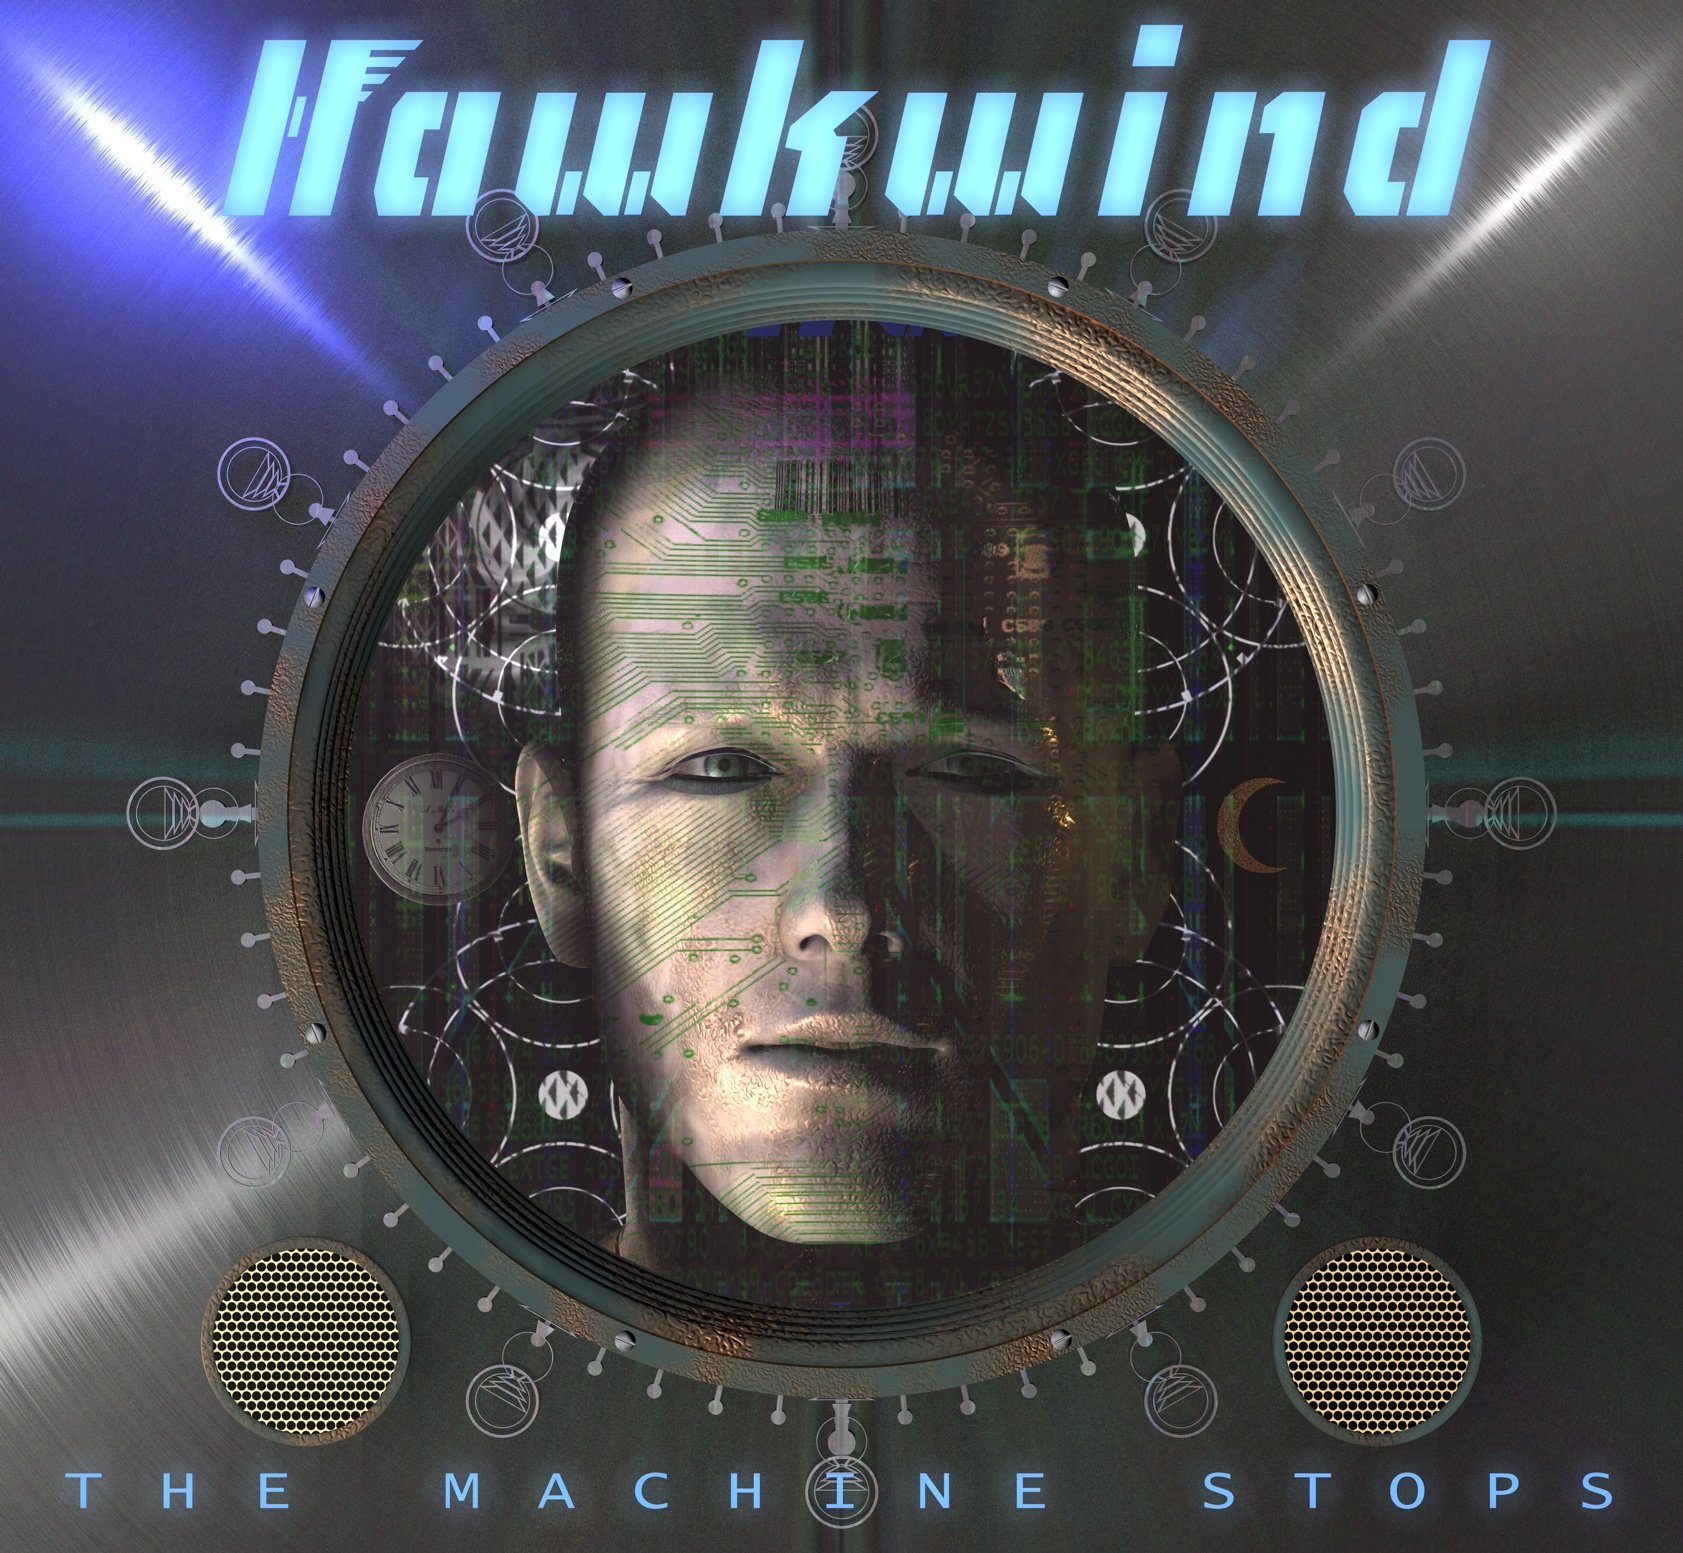 Hawkwind – The Machine Stops – CD Review